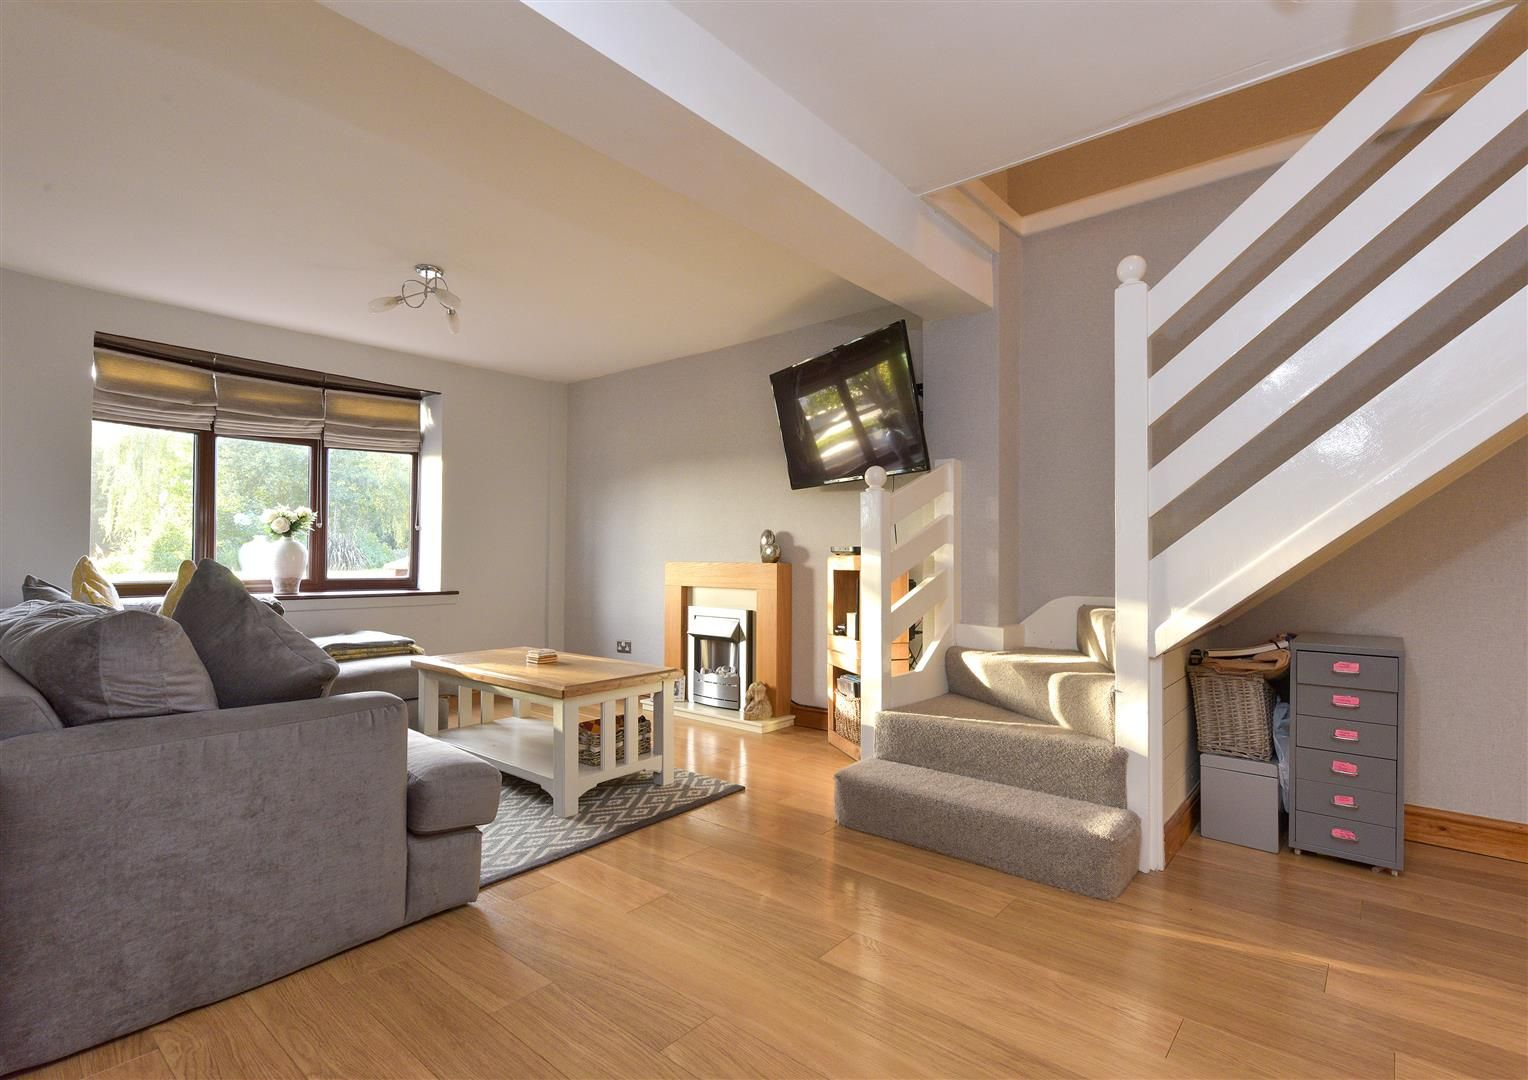 3 bed semi-detached for sale in Hayley Green  - Property Image 3